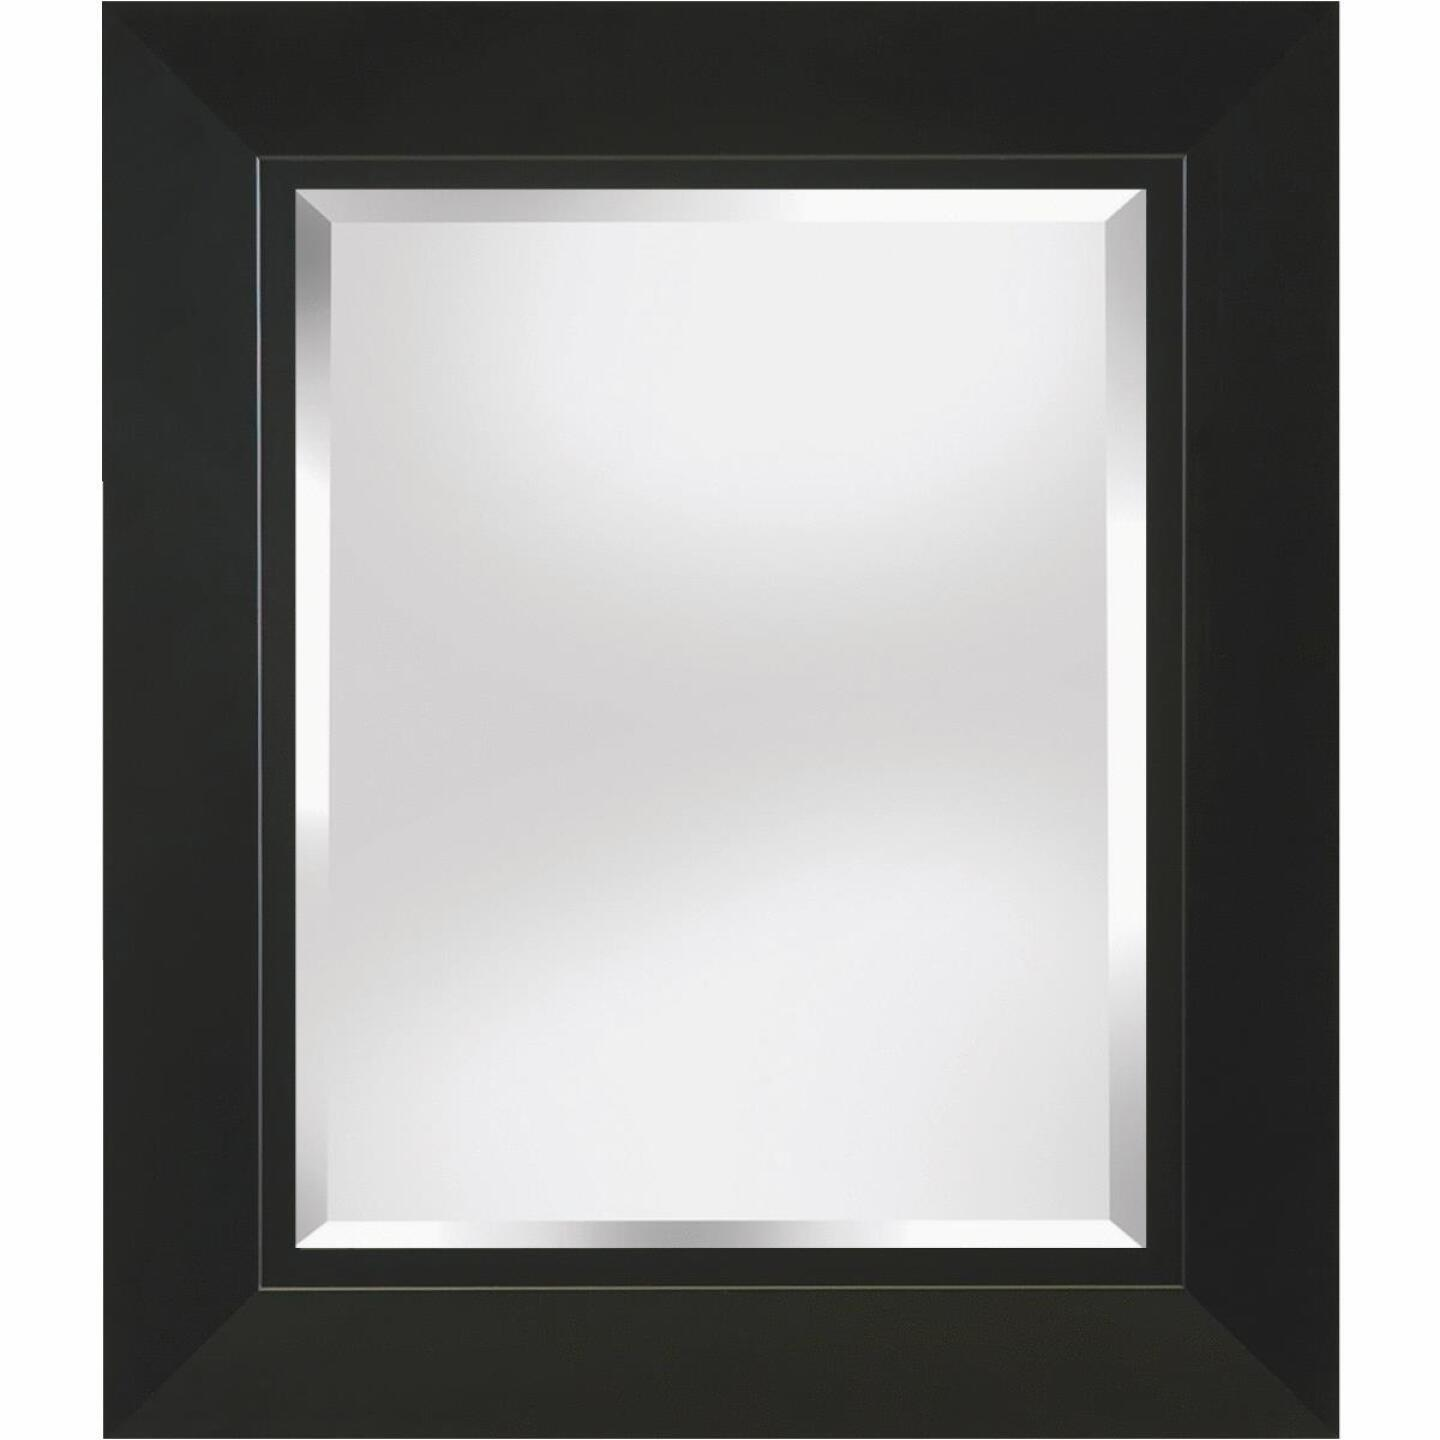 Erias Home Designs 23.5 In. W x 27.5 In. H Black Framed Wall Mirror Image 1